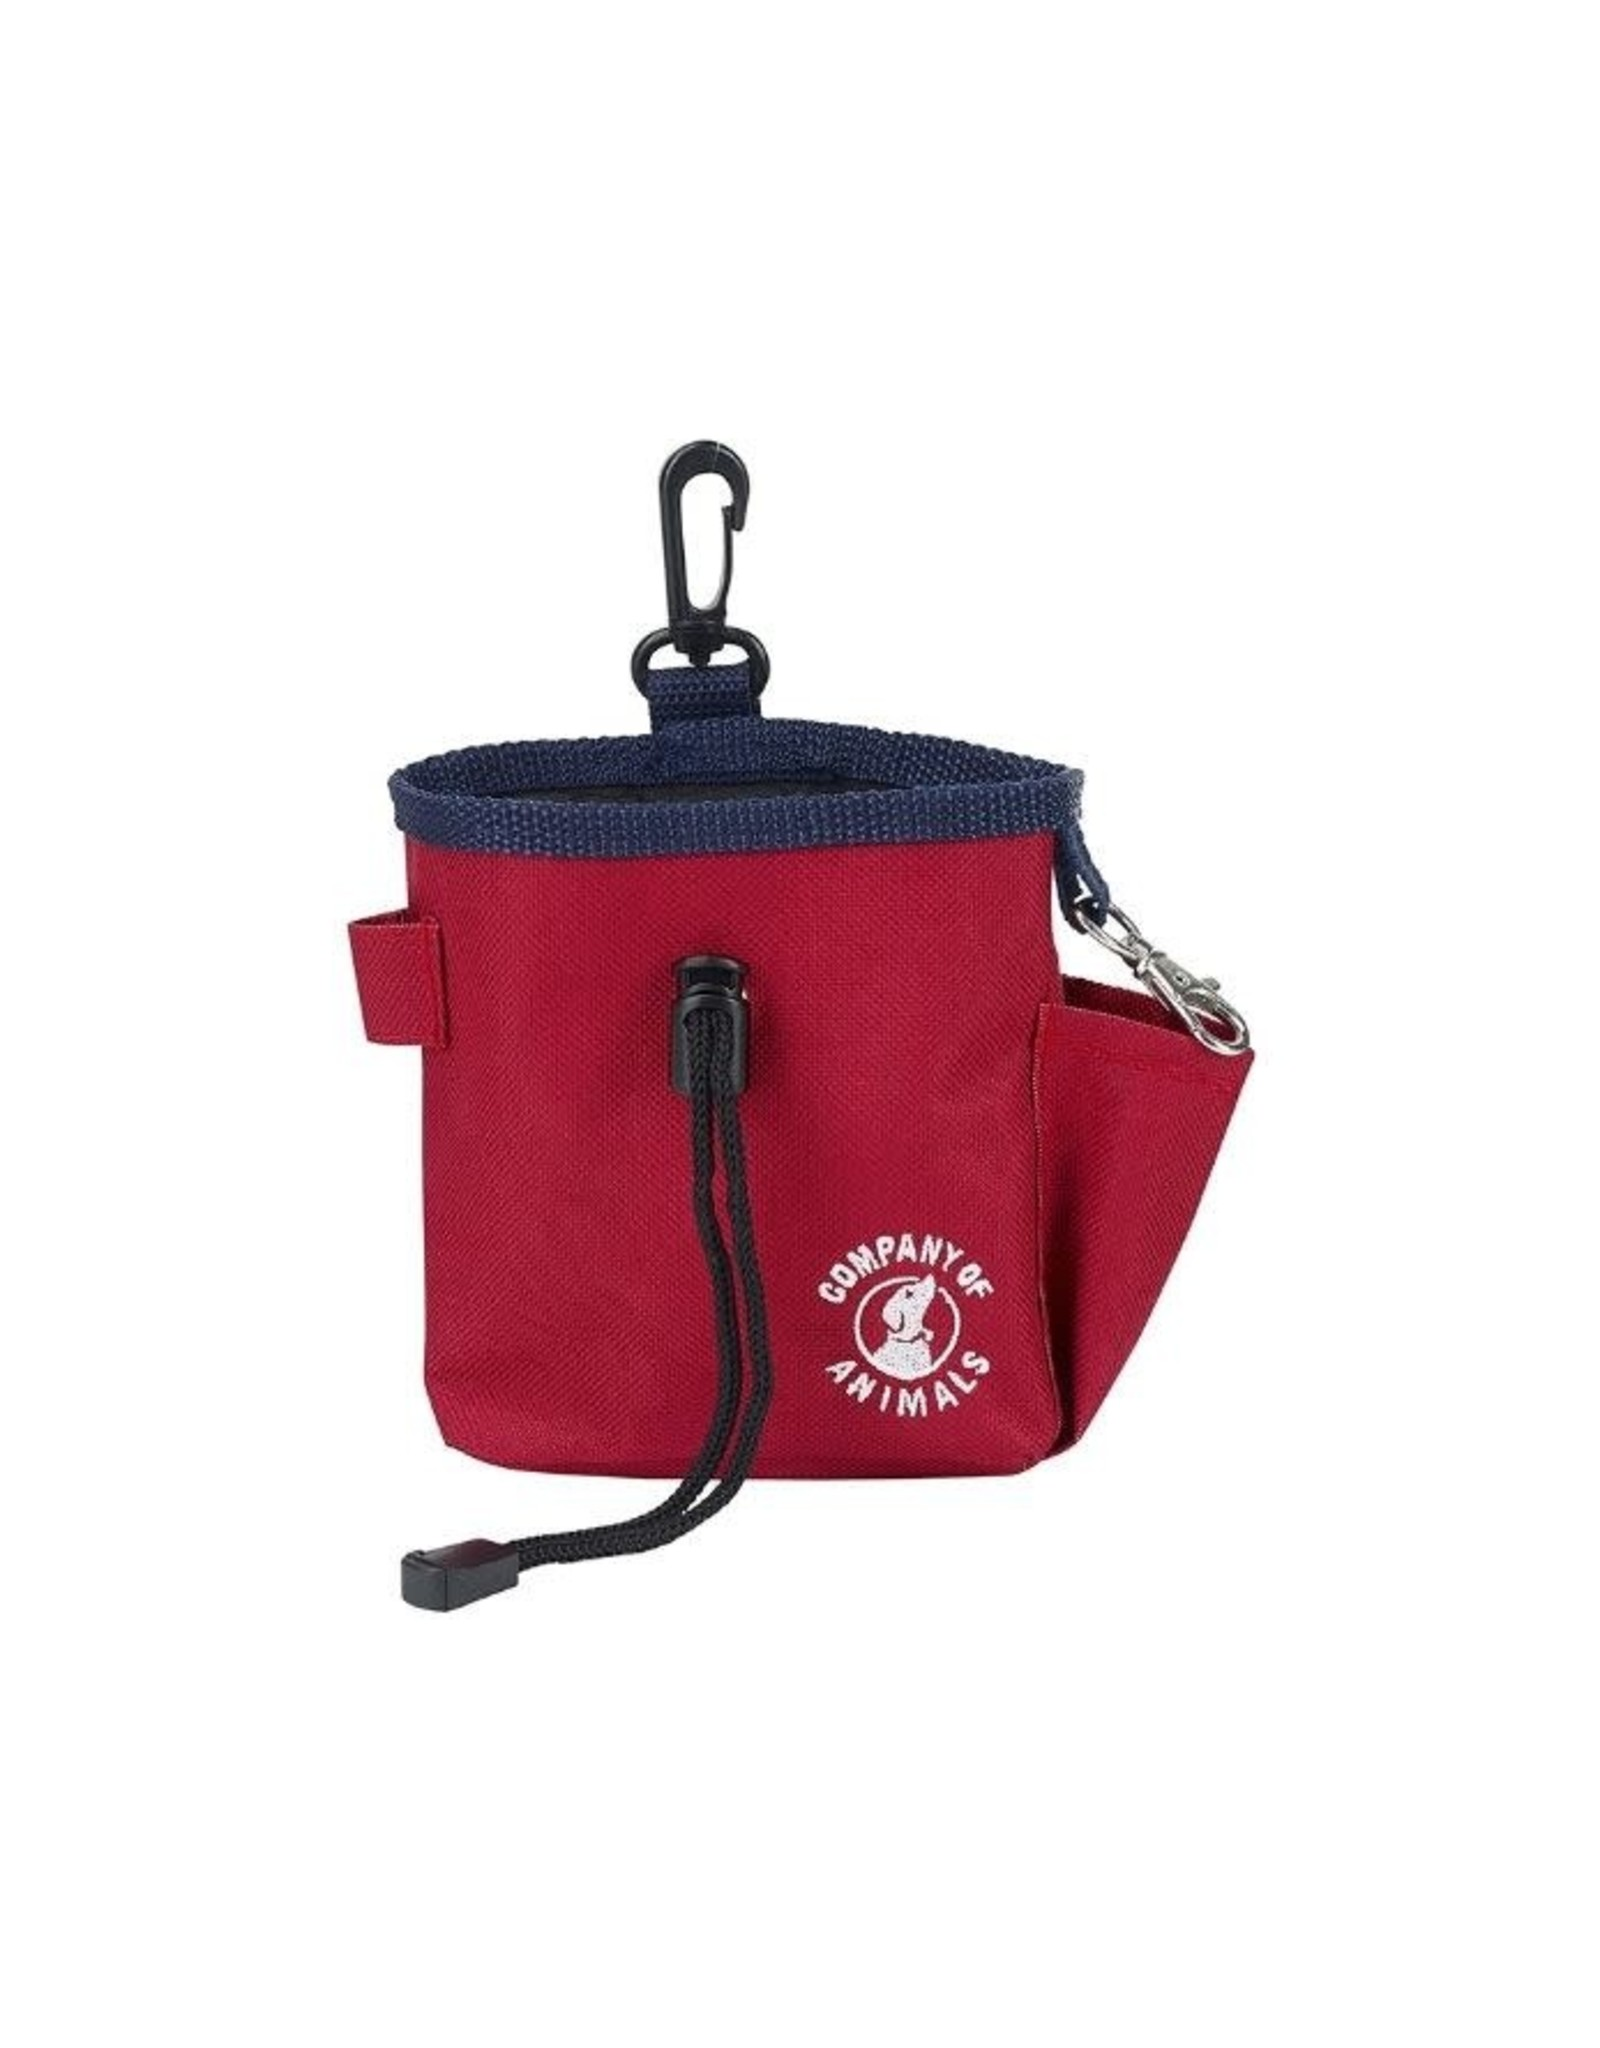 Company of Animals Dog Training Treat Bag, Red